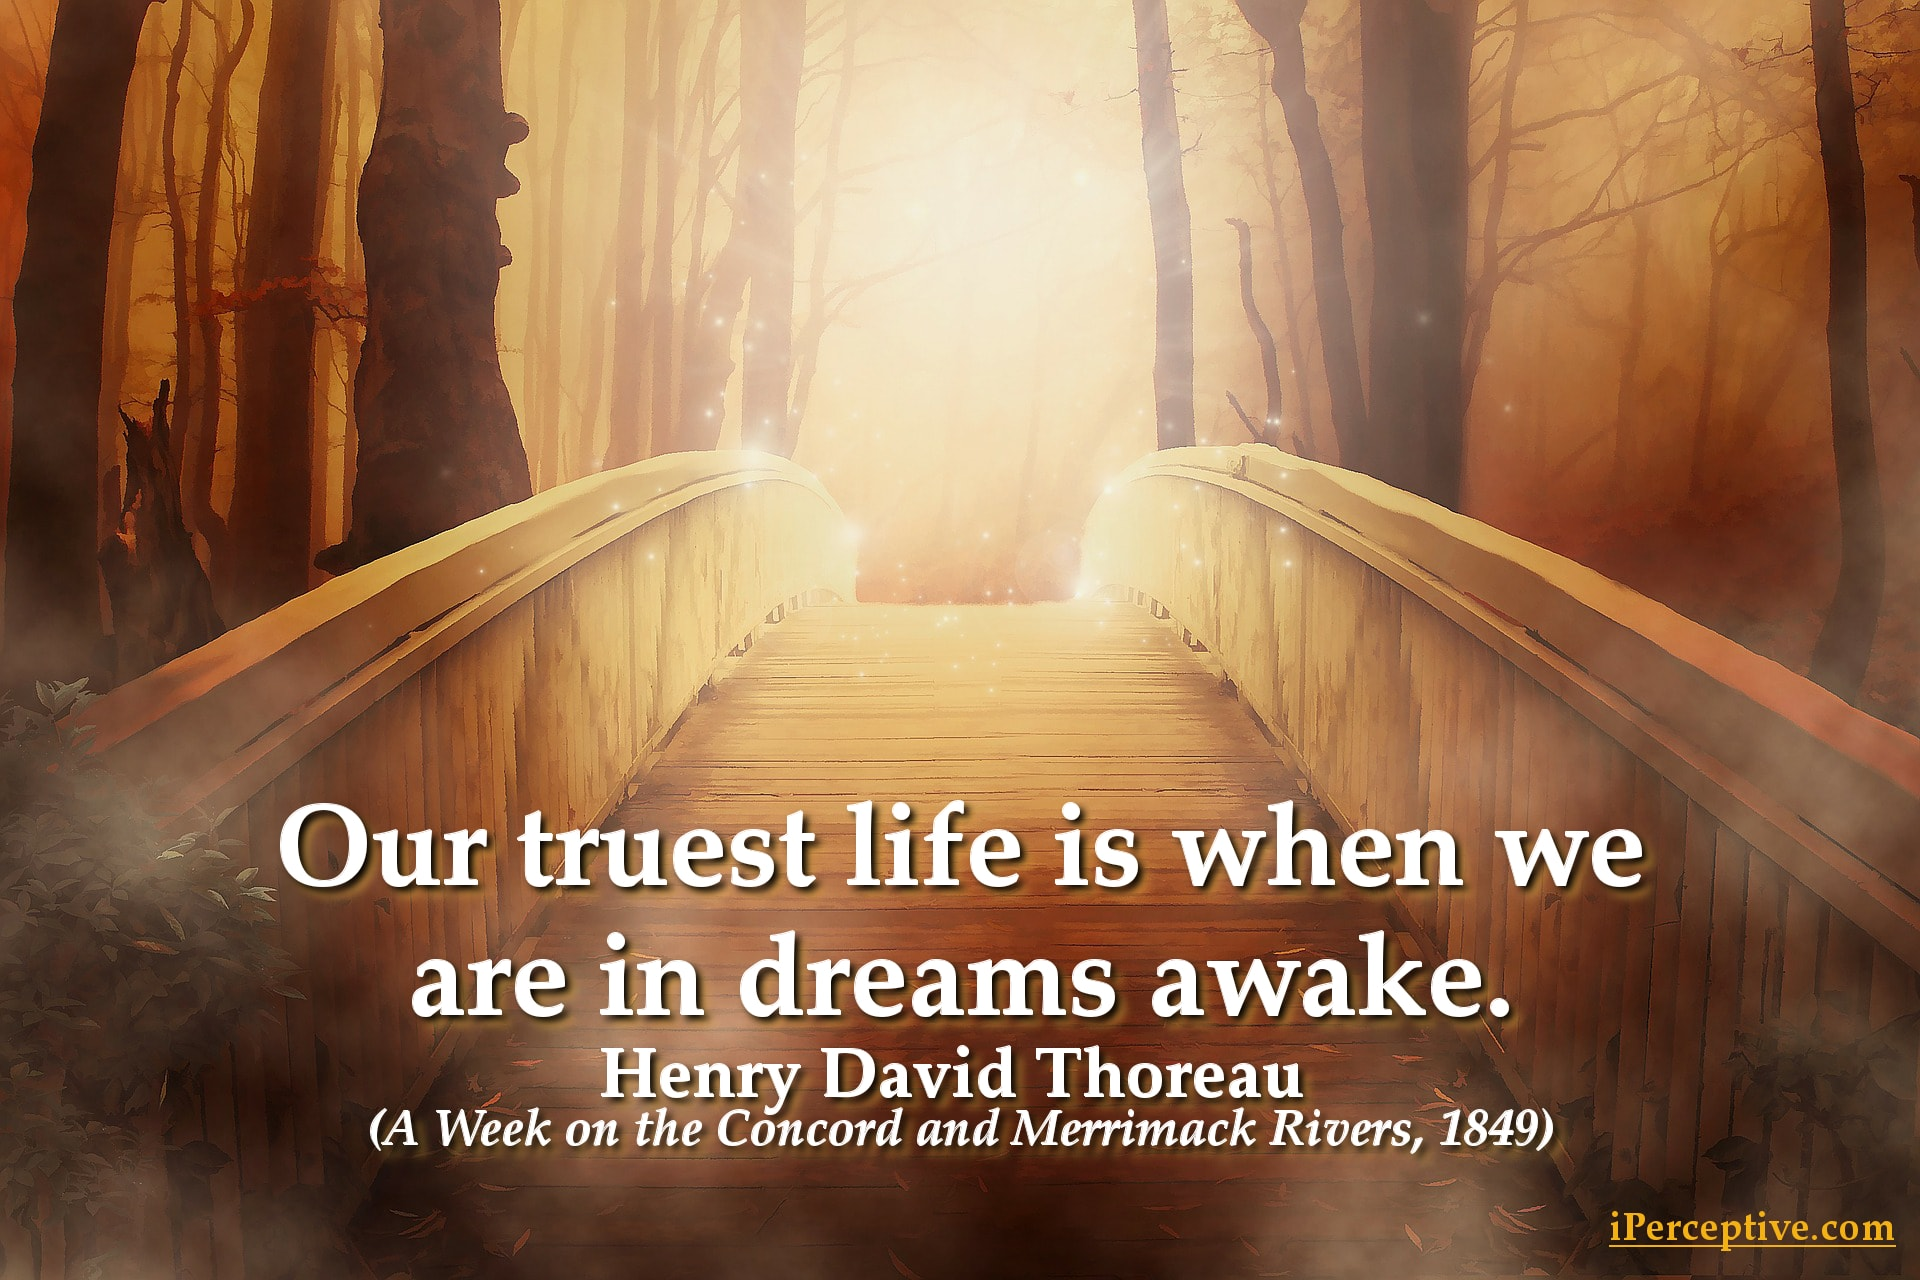 Henry David Thoreau Quote: Our truest life is when we are in dreams awkae...